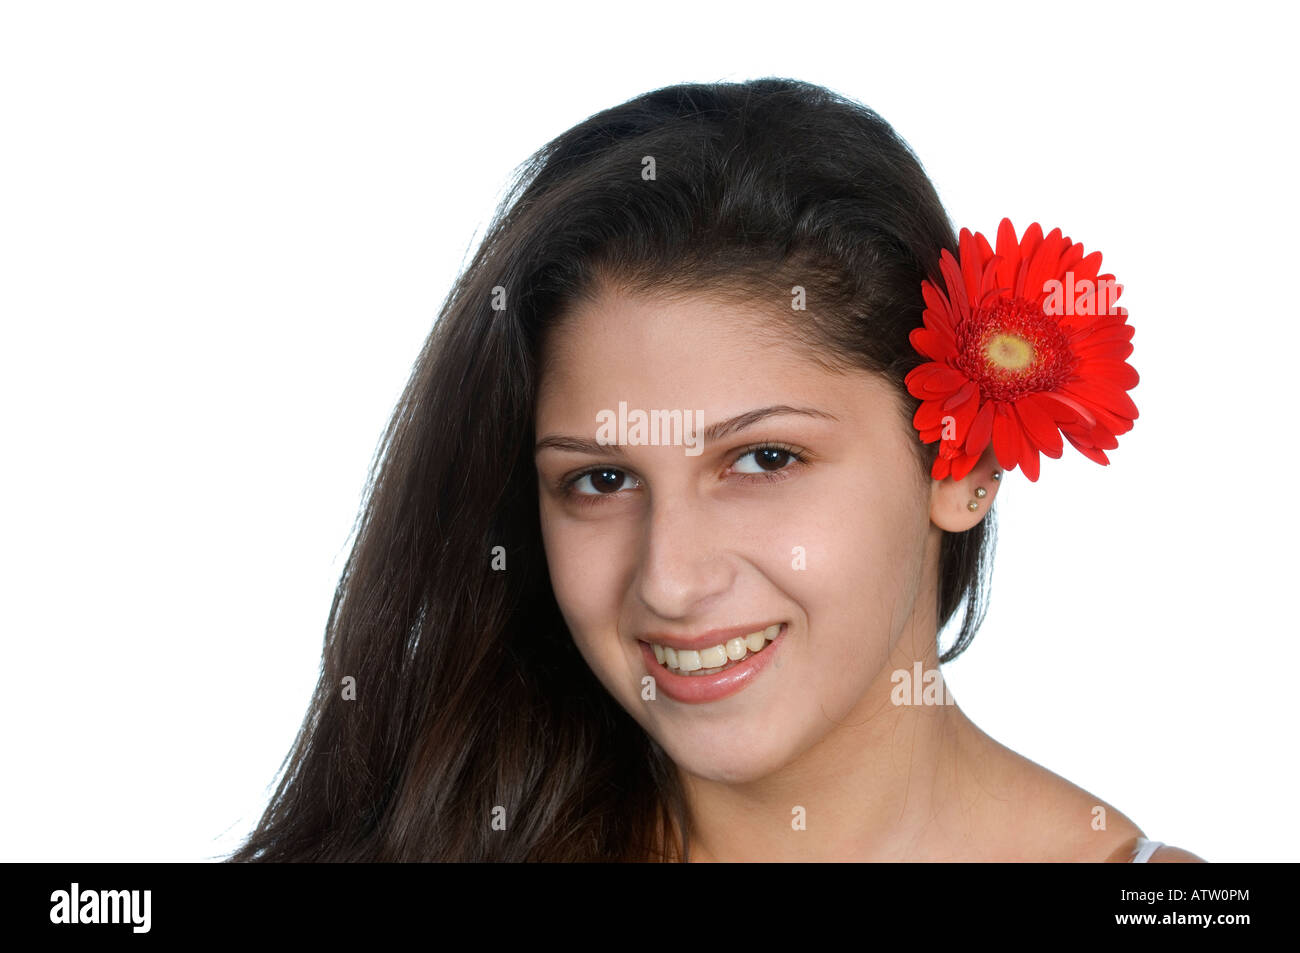 Flower behind ear stock photos flower behind ear stock images alamy beautiful ethnic girl with red gerbera flower behind ear stock image izmirmasajfo